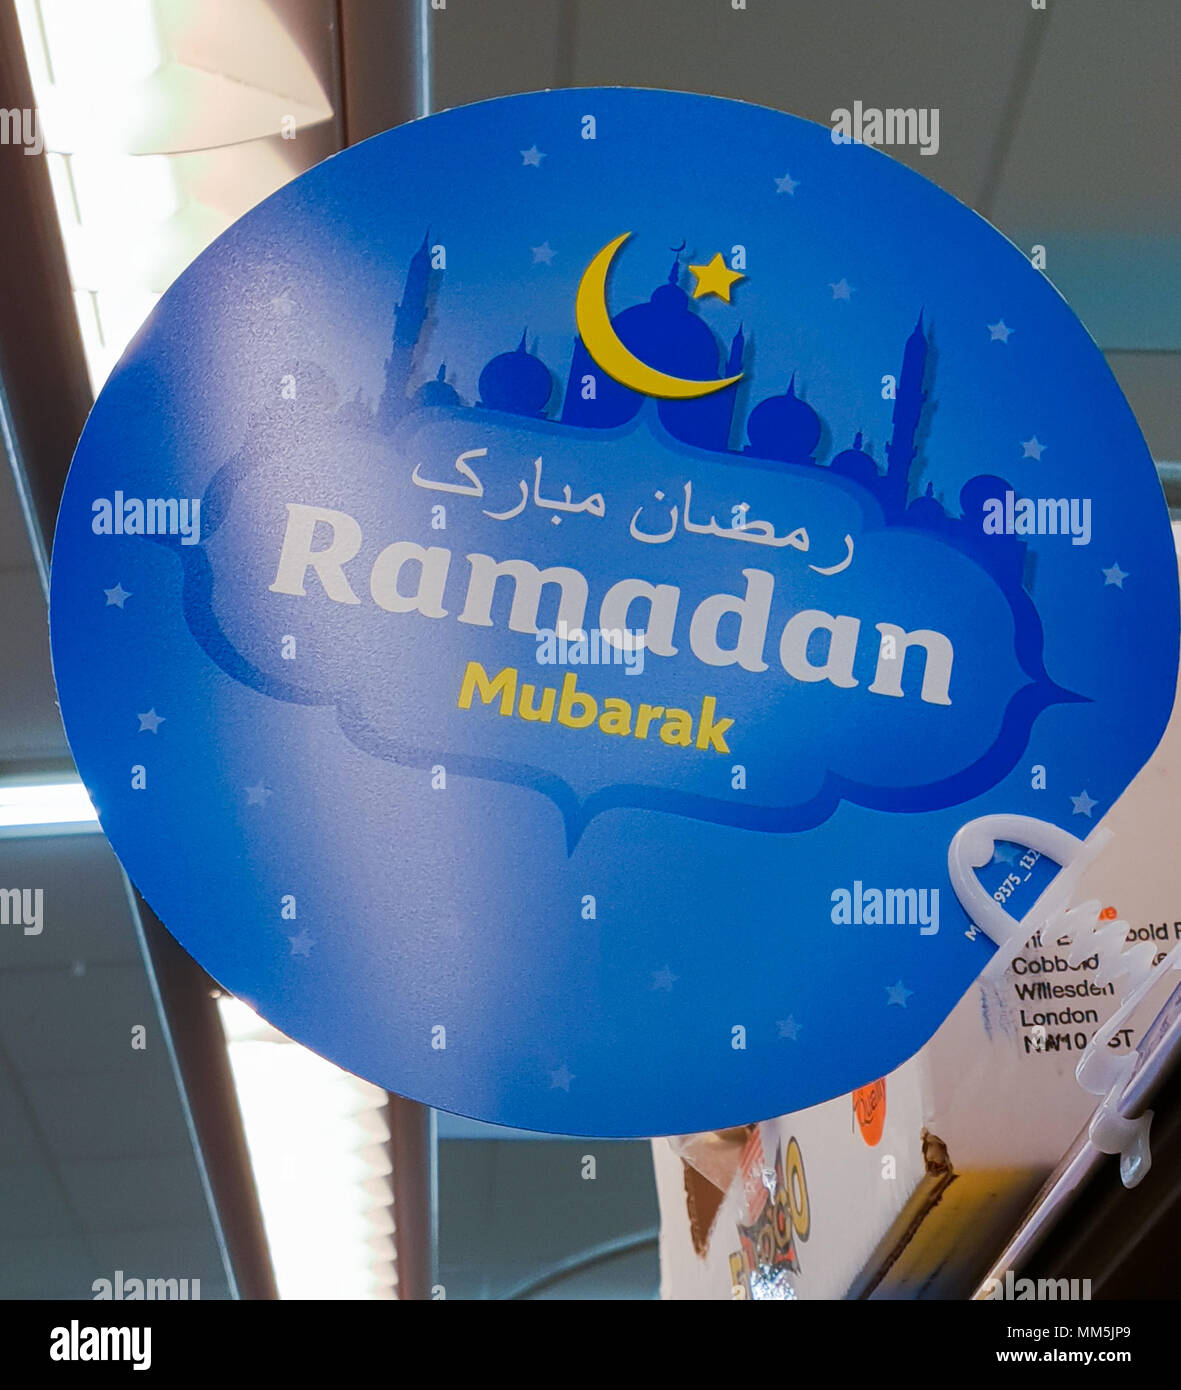 Top 2nd Eid Al-Fitr 2018 - supermarket-morrisons-stocks-up-for-ramadan-which-begins-on-wednesday-16-may-and-ends-on-thursday-14-june-2018-the-first-day-of-shawwal-and-eid-al-fitr-falls-on-friday-15-june-2018-featuring-view-where-london-united-kingdom-when-08-apr-2018-credit-dinendra-hariawenn-MM5JP9  Trends_952942 .jpg